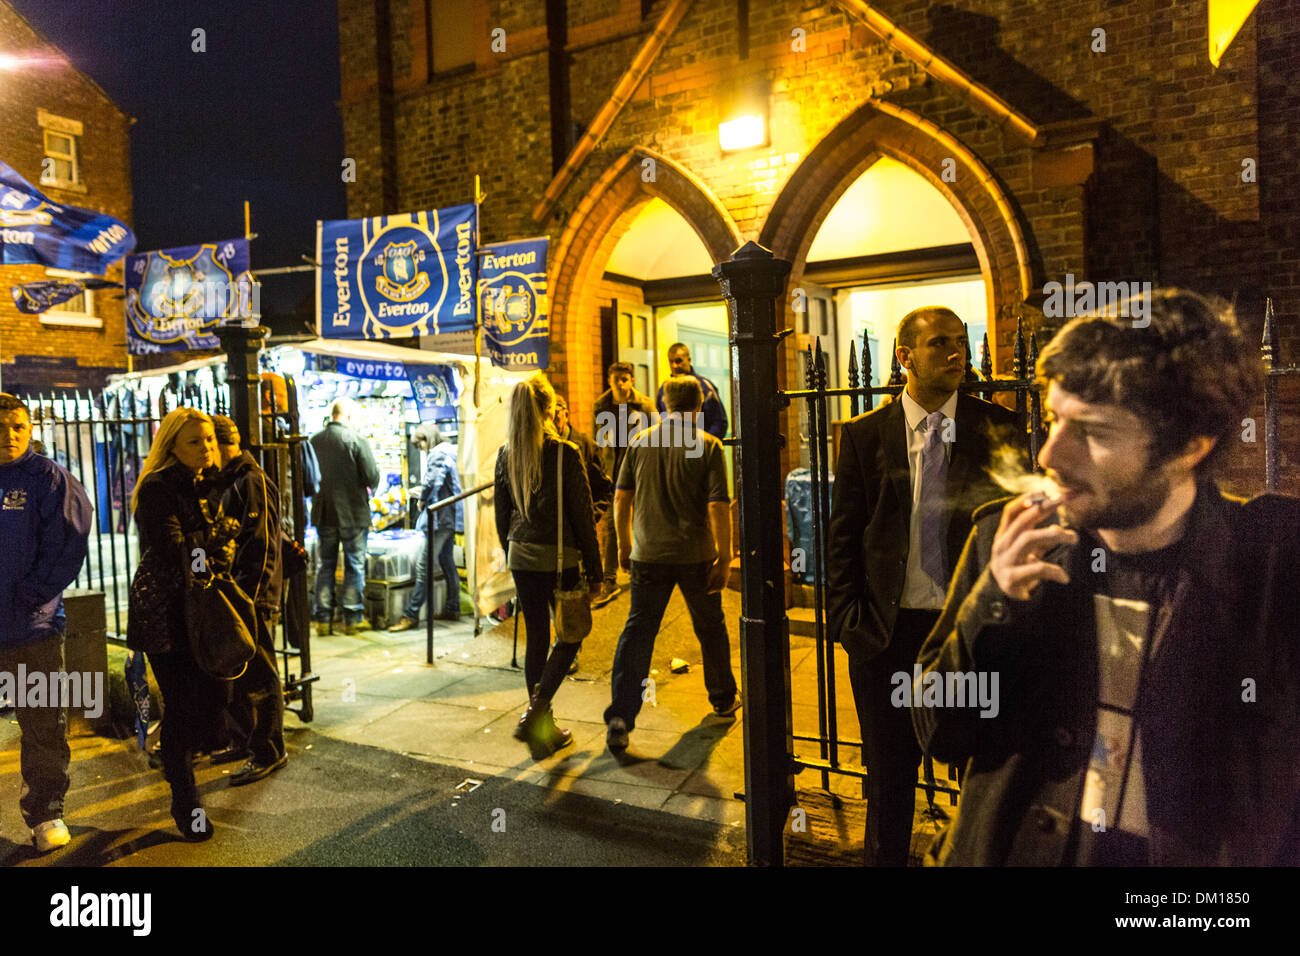 Football fans outside St Lukes Church, Goodison Road, before the midweek game between Everton and Newcastle Utd - Stock Image